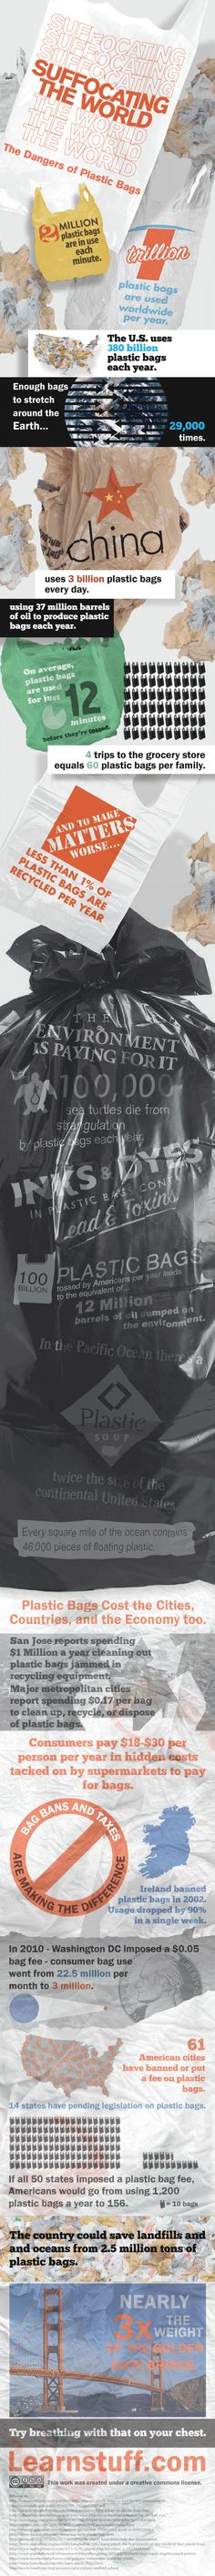 use a cloth bag ..instead of plastic and use it again and again when you go shopping.